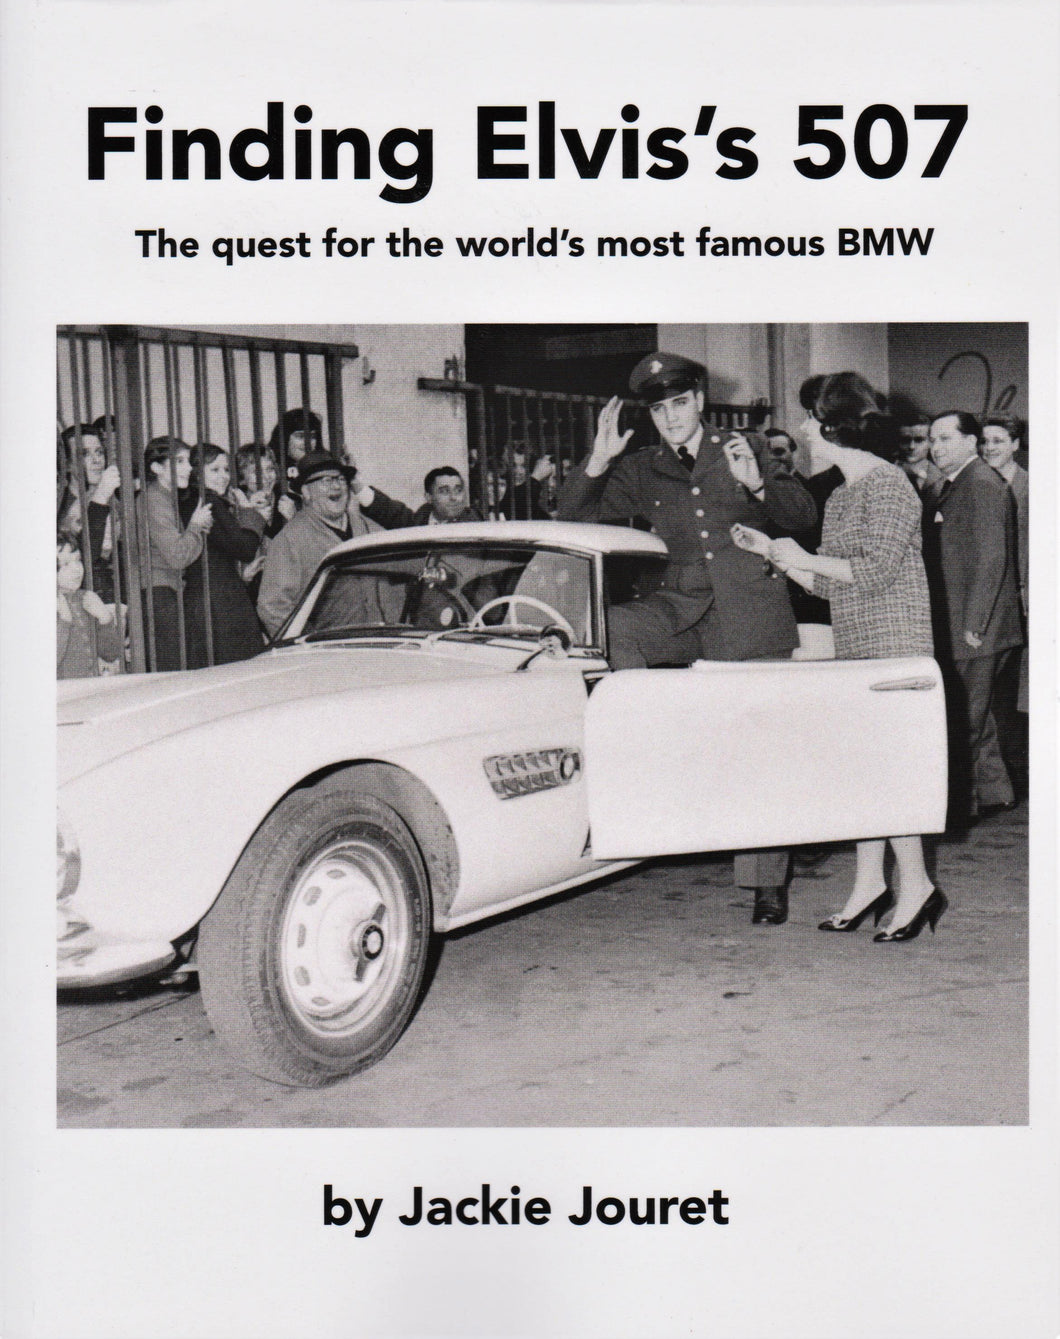 Finding Elvis's 507 by Jackie Jouret